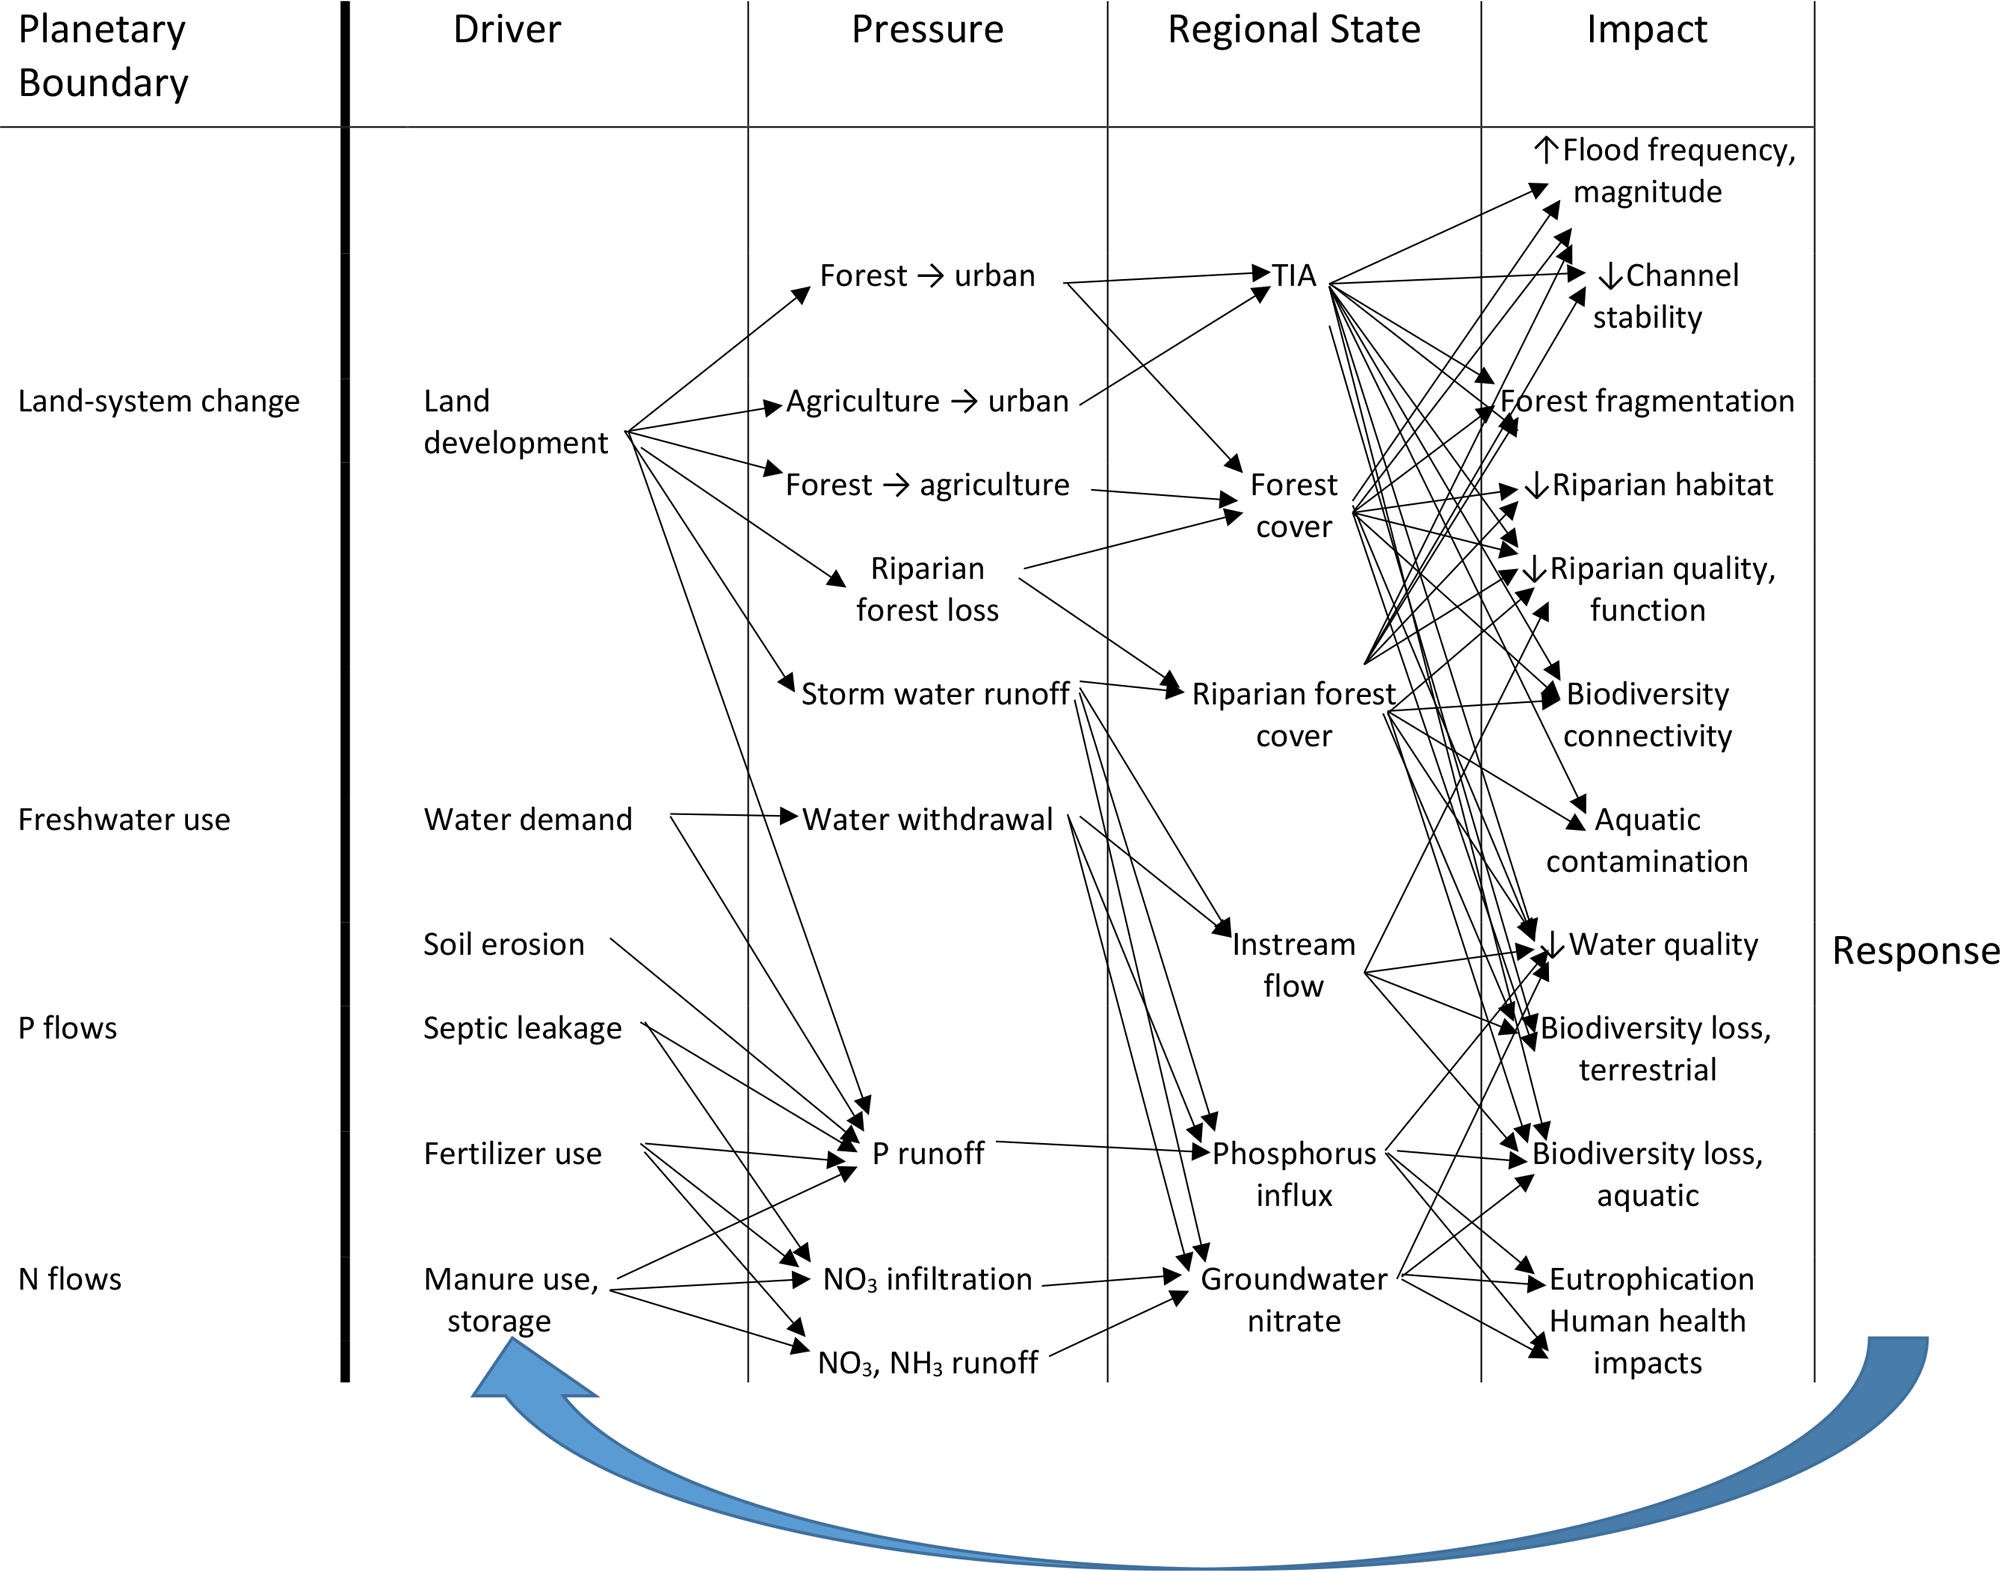 hight resolution of causal chain diagram for regional boundaries using a driver pressure state impact response dpsir framework similar to nykvist et al 2013